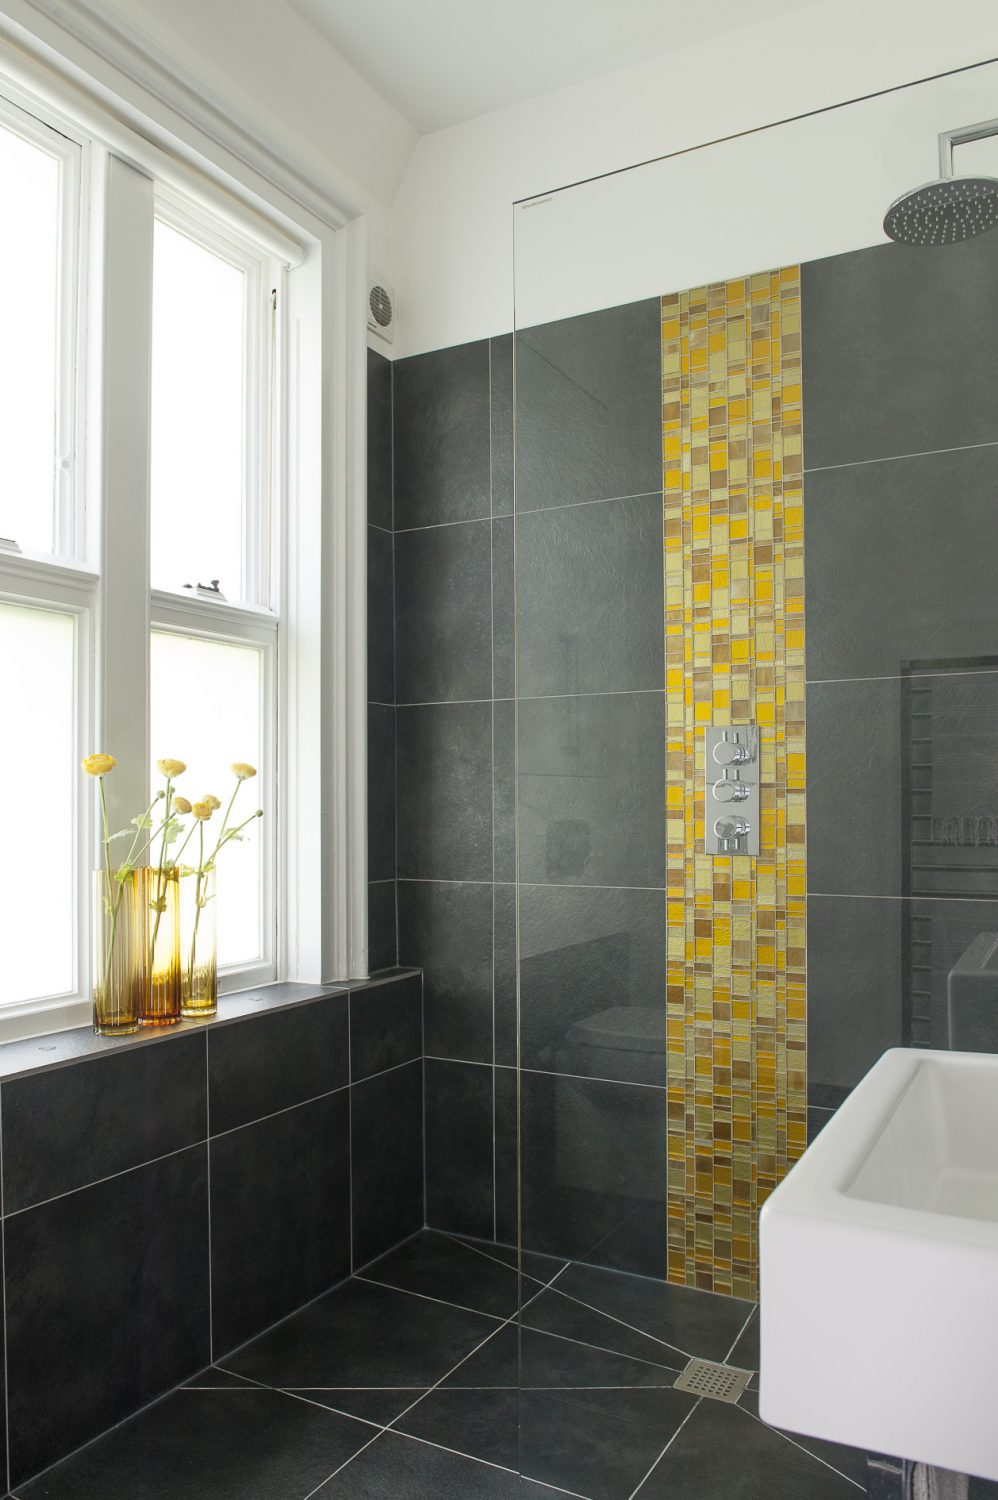 The downstairs wet room with panel of Venetian glass tiles